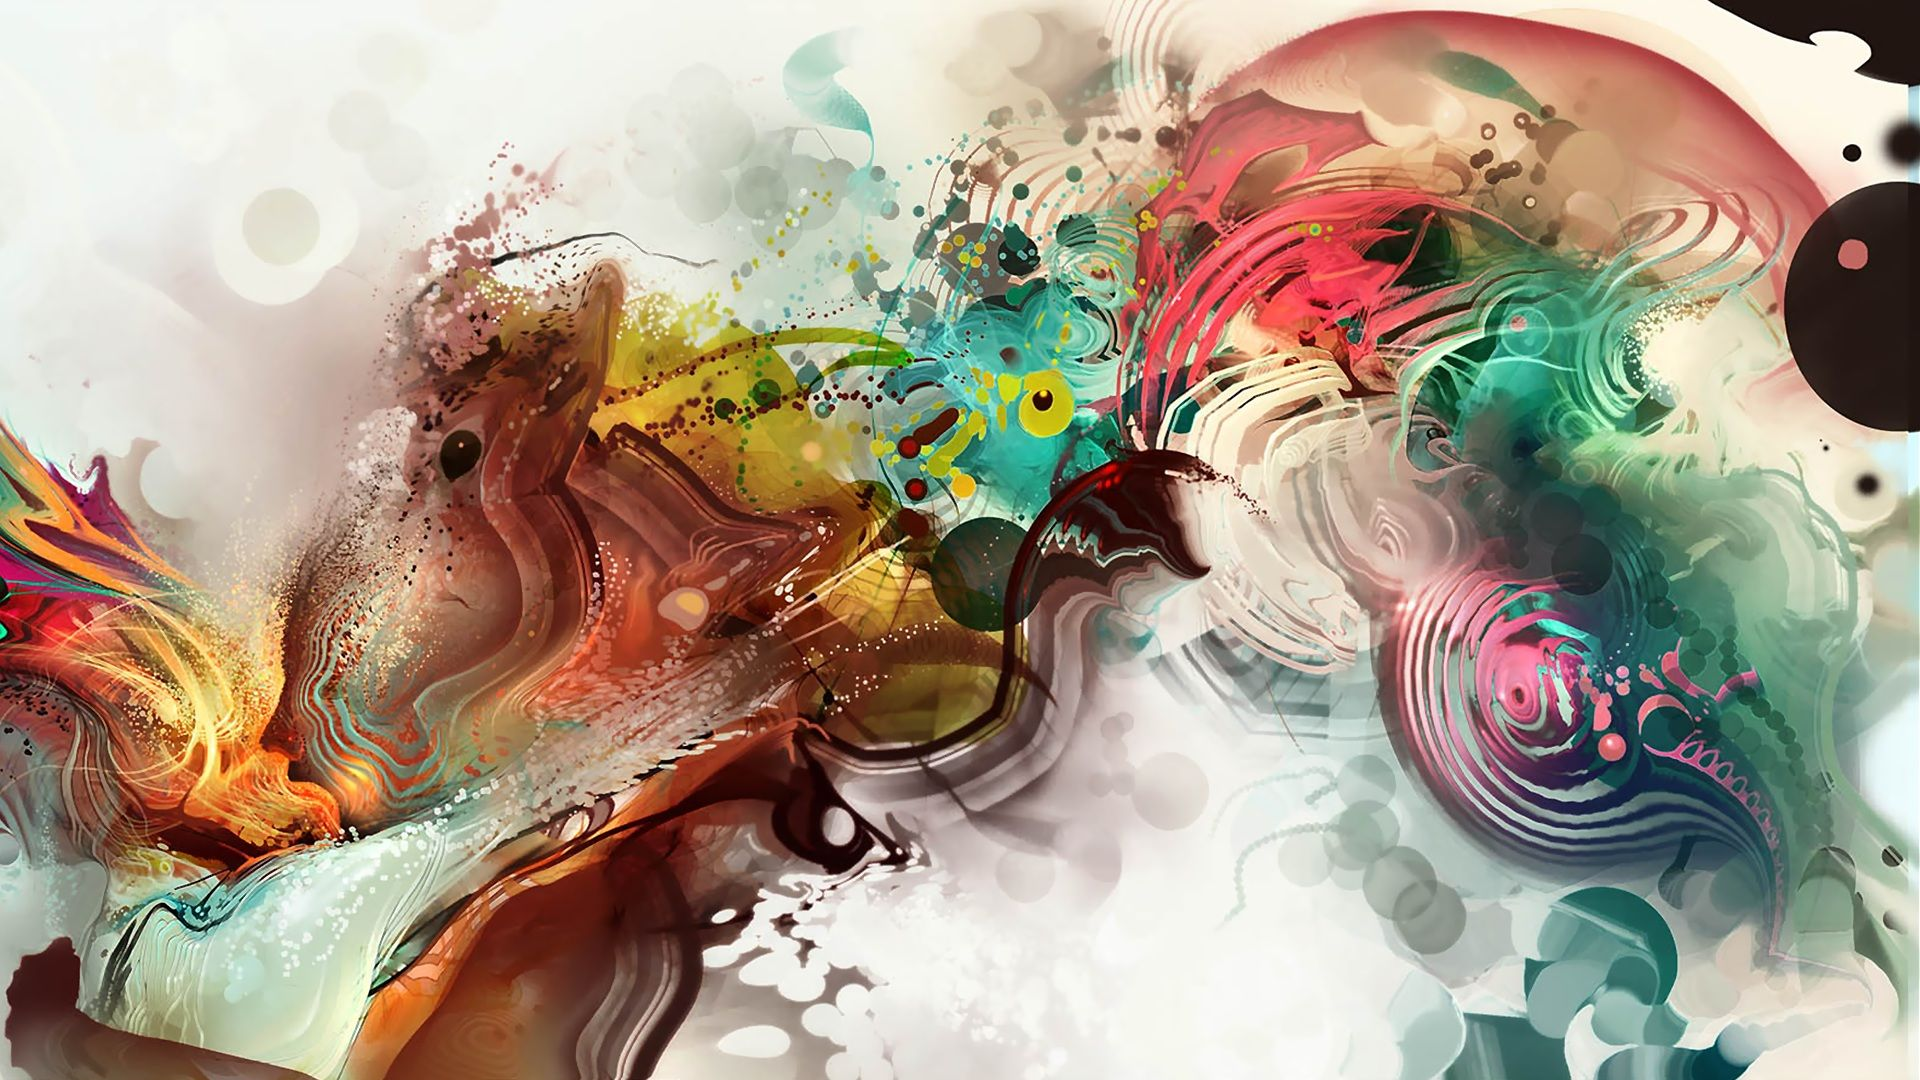 Artistic abstract wallpaper full hd m0d 1920x1080 px 592 - Contemporary desktop wallpaper ...